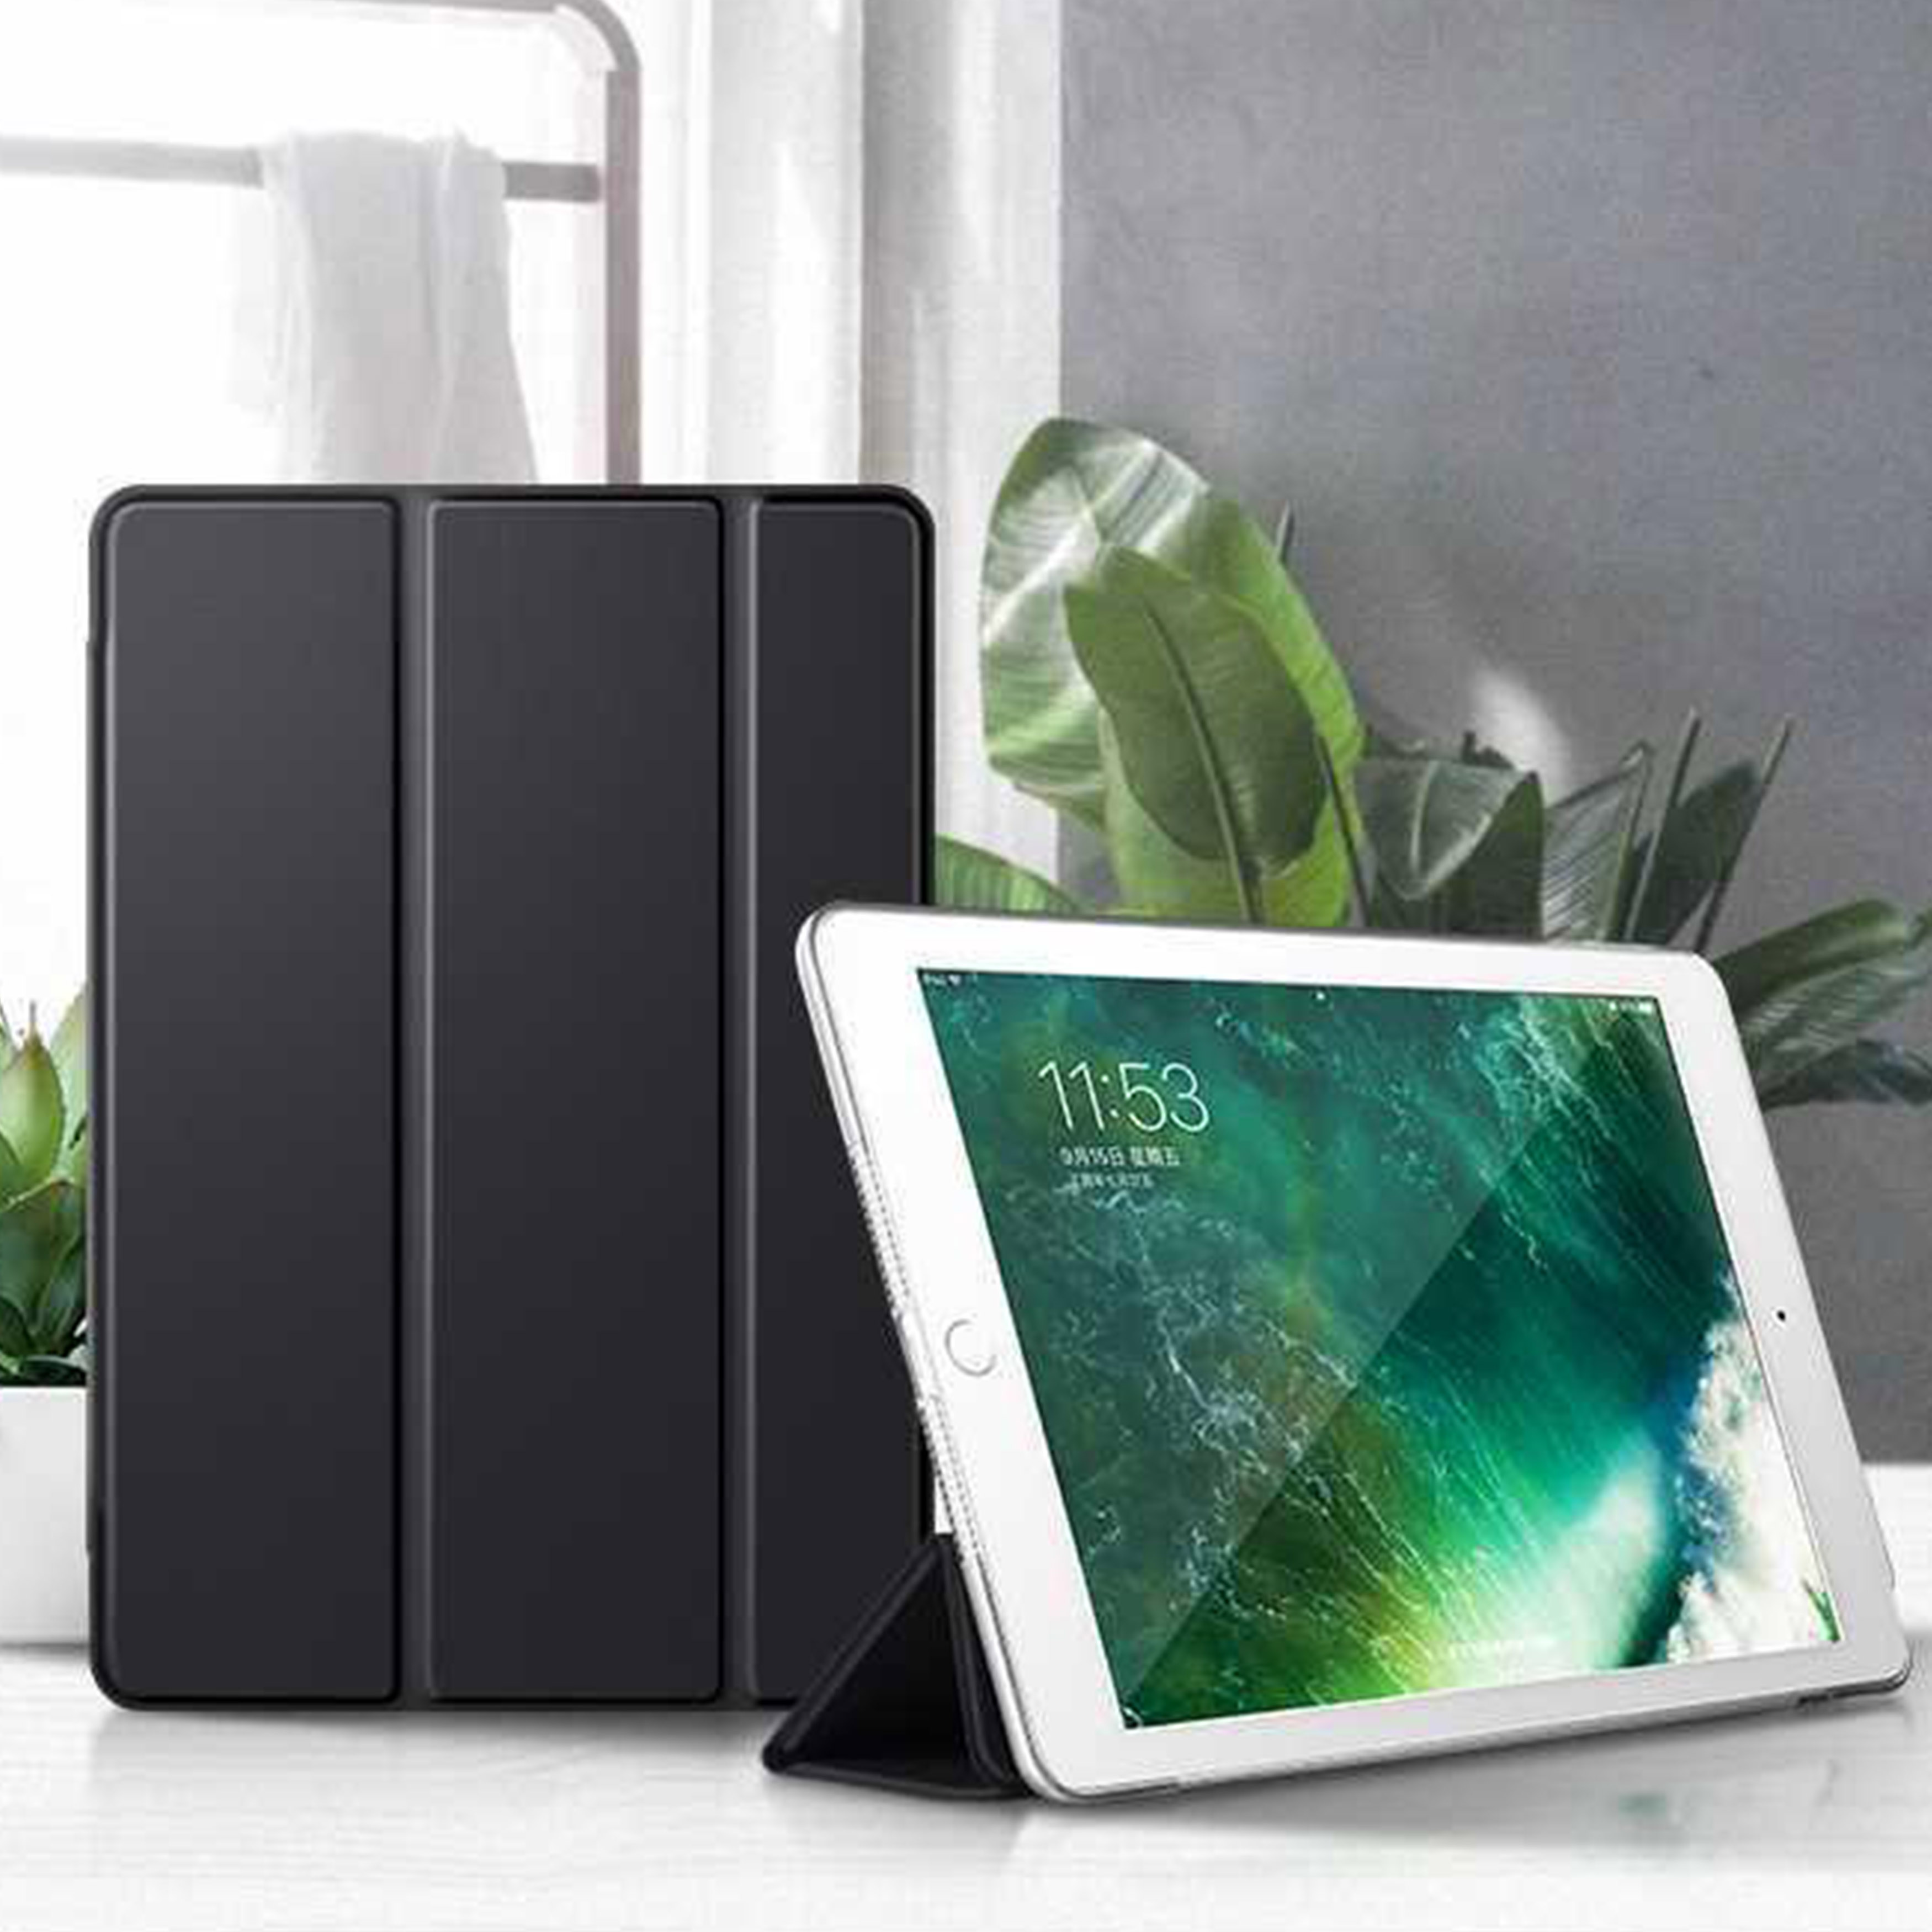 Leather Case For Apple IPad 5 2017 5th Generation Folio Cover For Ipad 5 A1822 A1823 9.7'' Tablet Case Stand Auto Sleep Smart